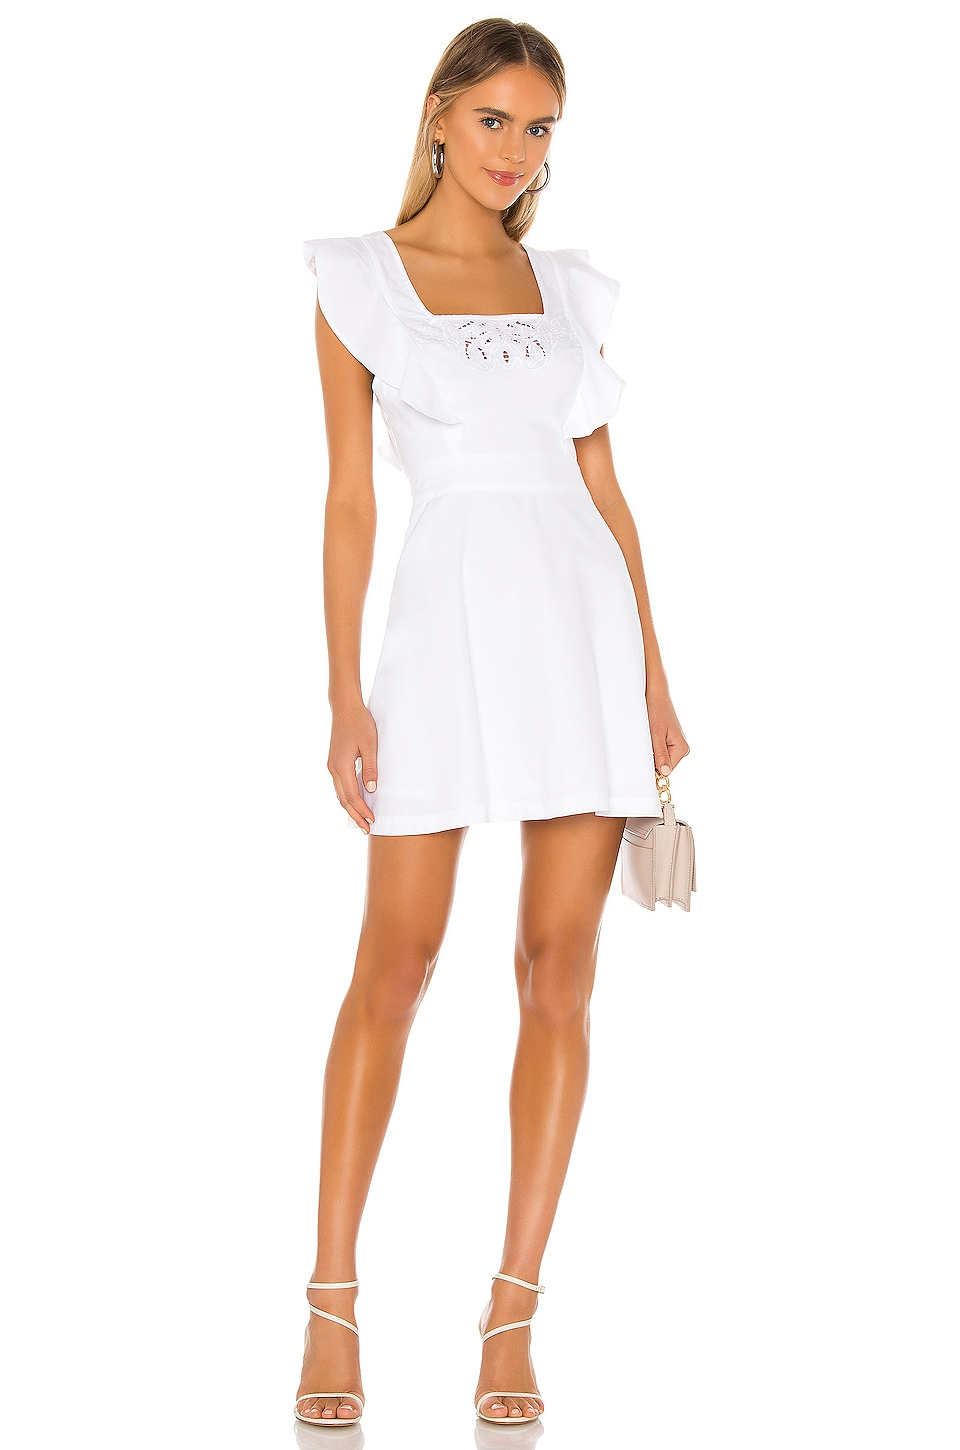 Tie Back Dress             BCBGeneration                                                                                                       CA$ 165.70 15